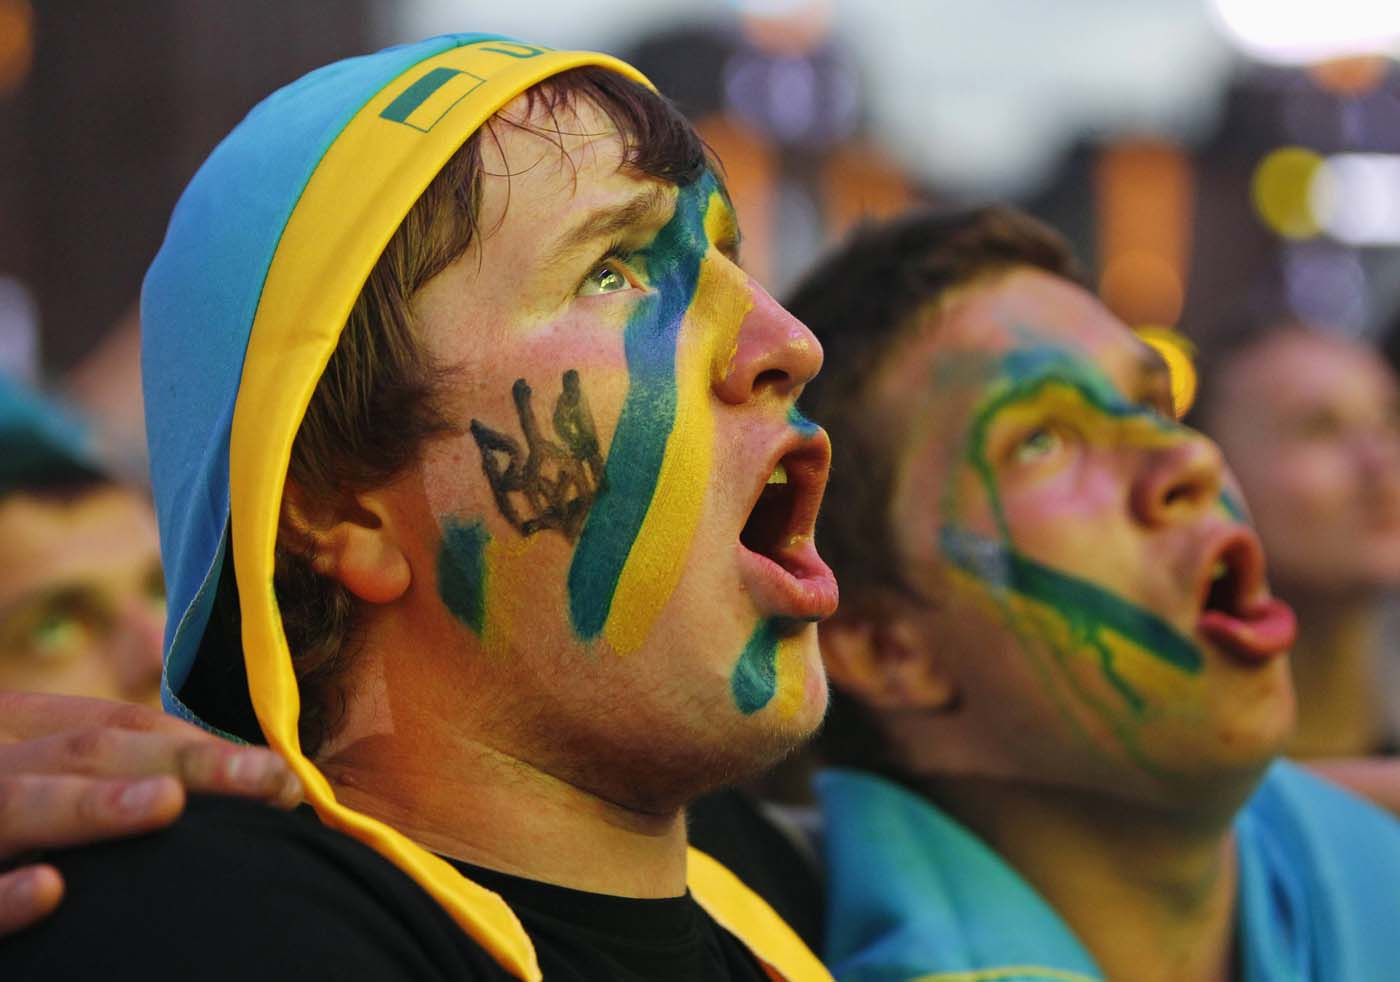 Fans of Ukraine react during a public screening of the Euro 2012 Group B soccer match between Ukraine and England in the fan zone in Kiev June 19, 2012. (Gleb Garanich/Reuters)